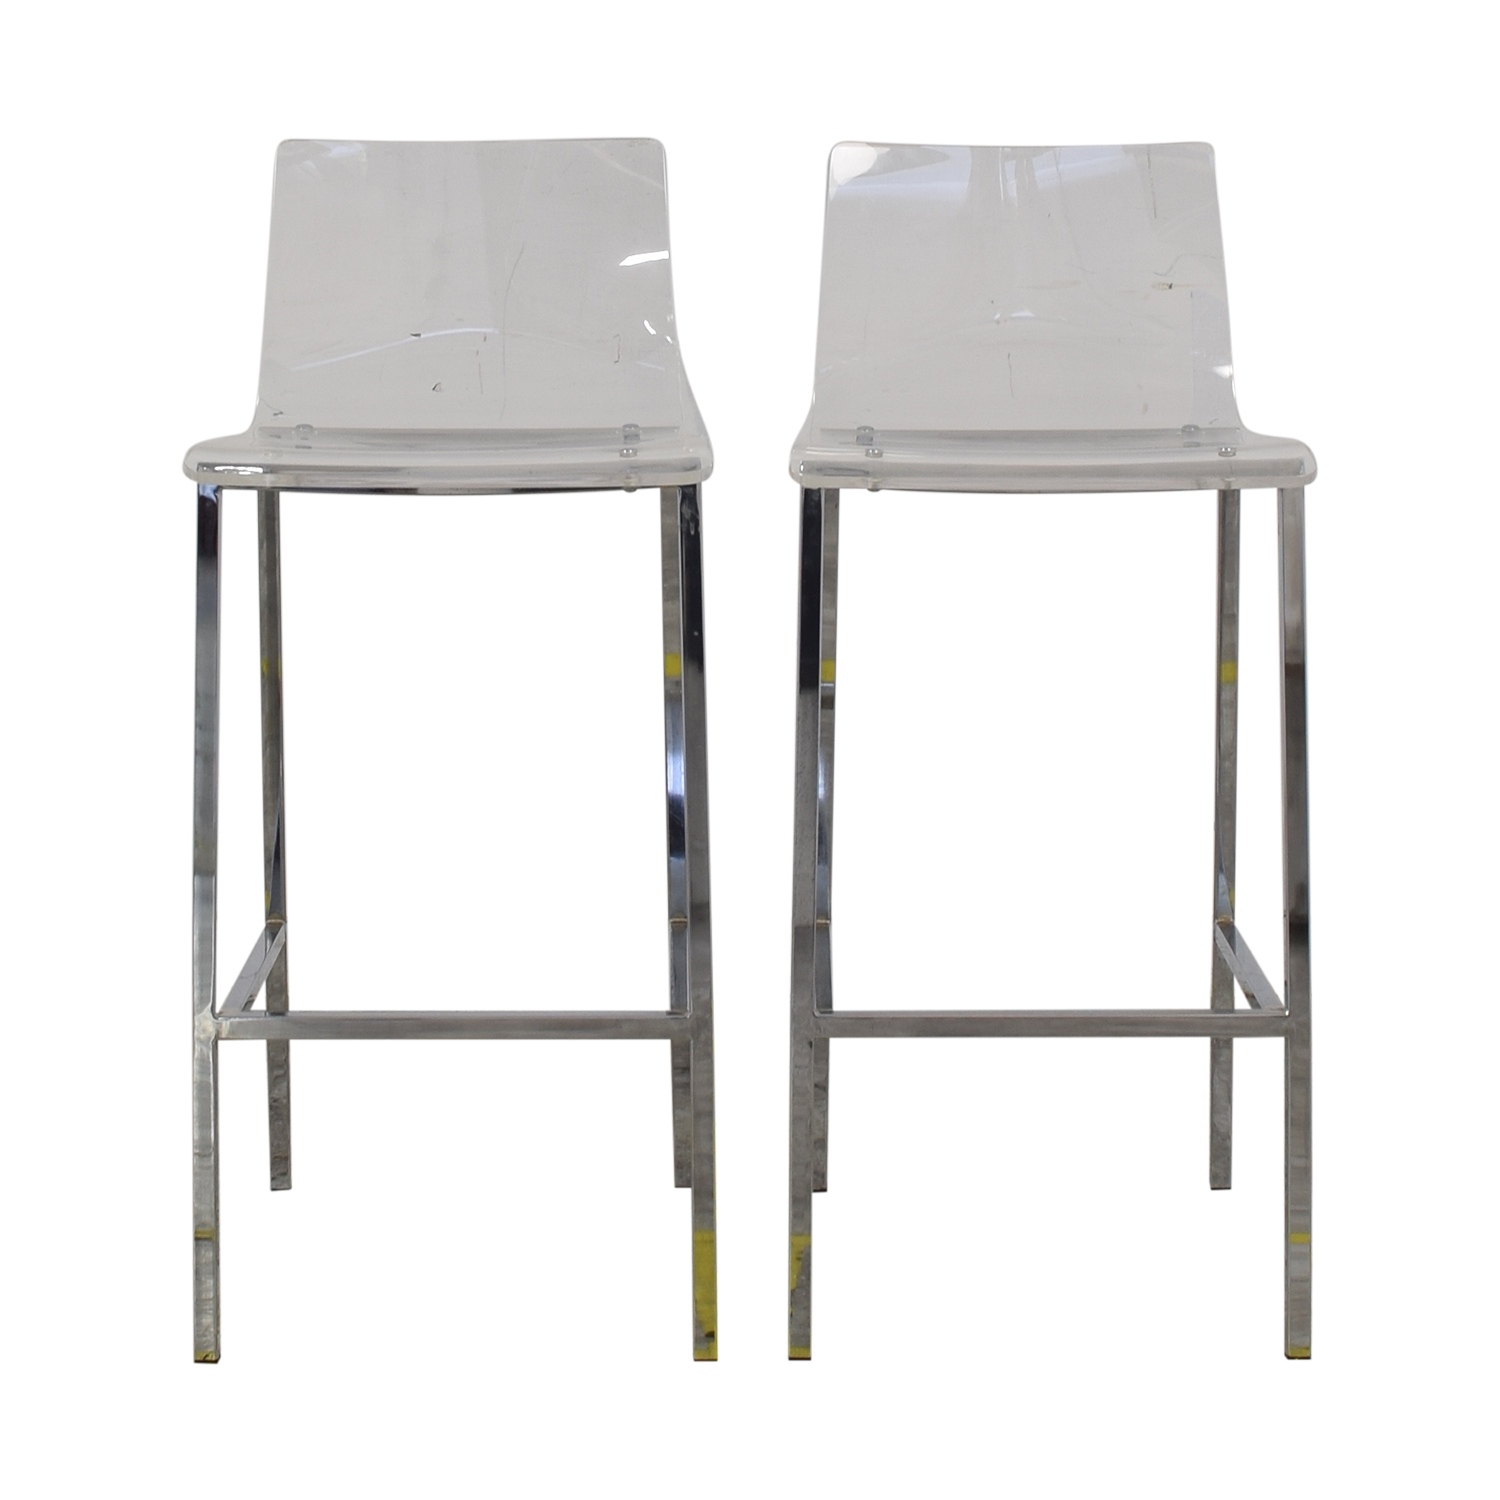 buy CB2 Vapor Acryllic Bar Stools CB2 Chairs